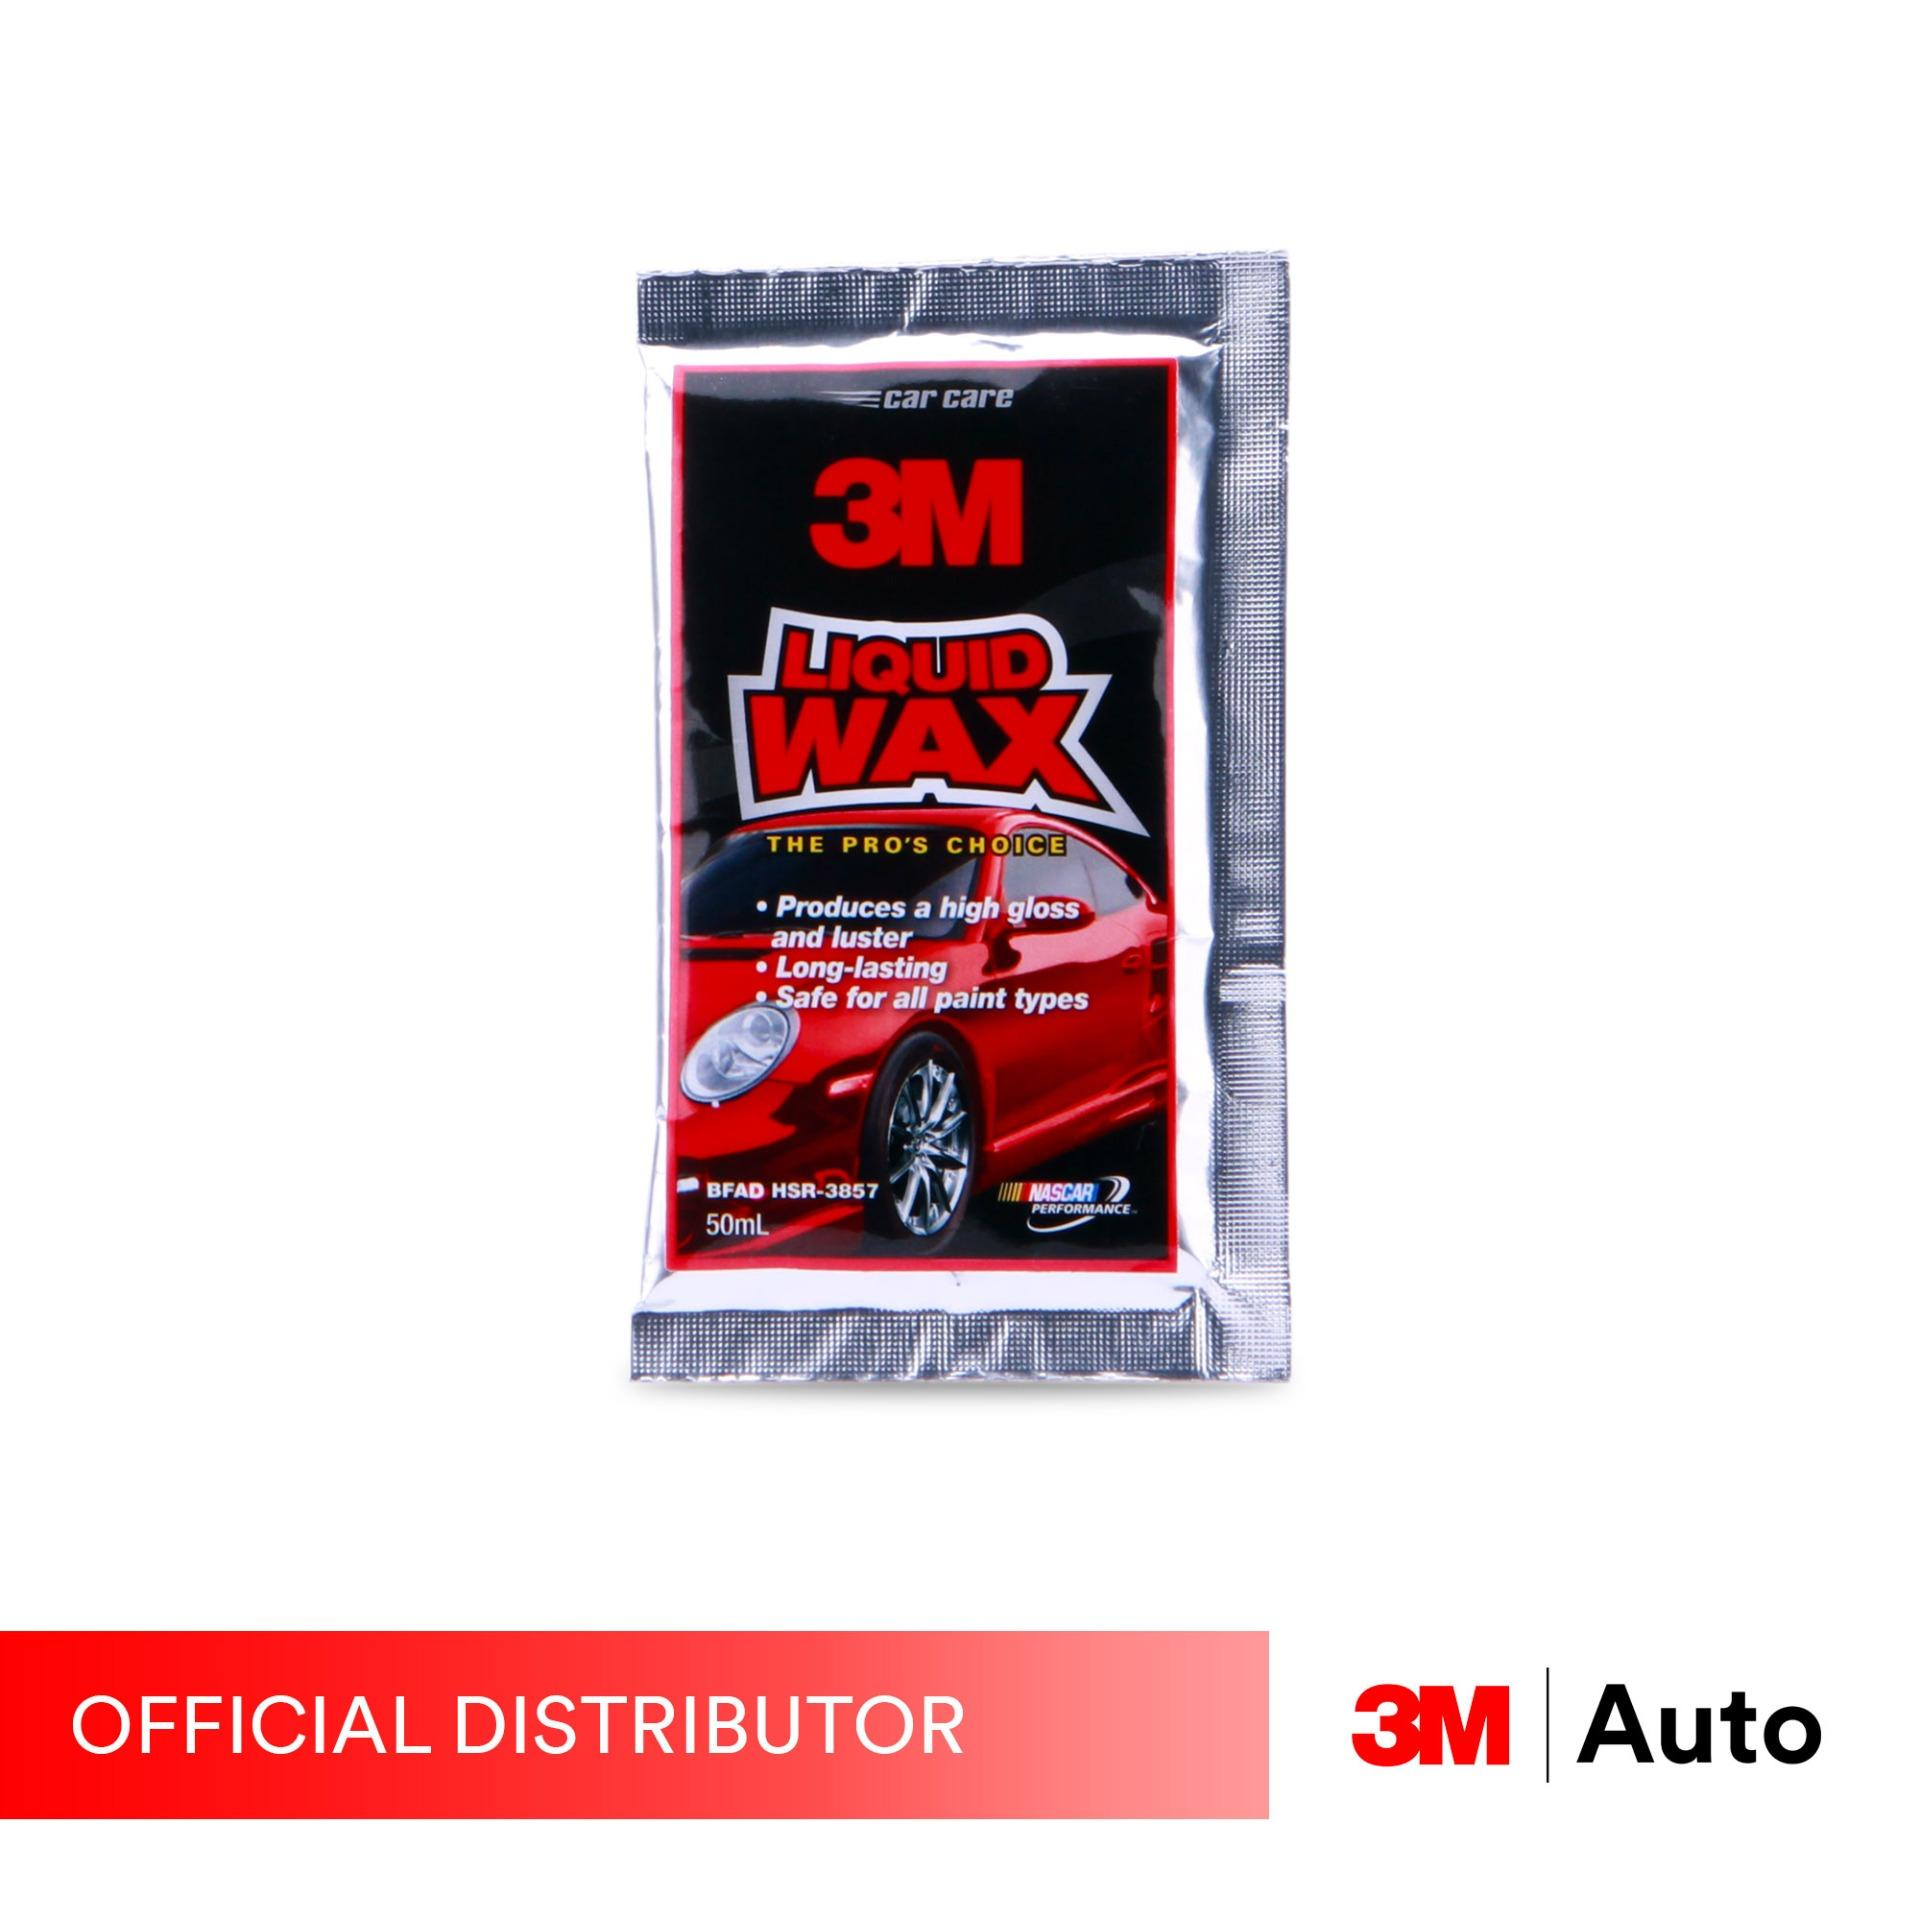 3M CAR CARE LIQUID WAX 50ML SACHET